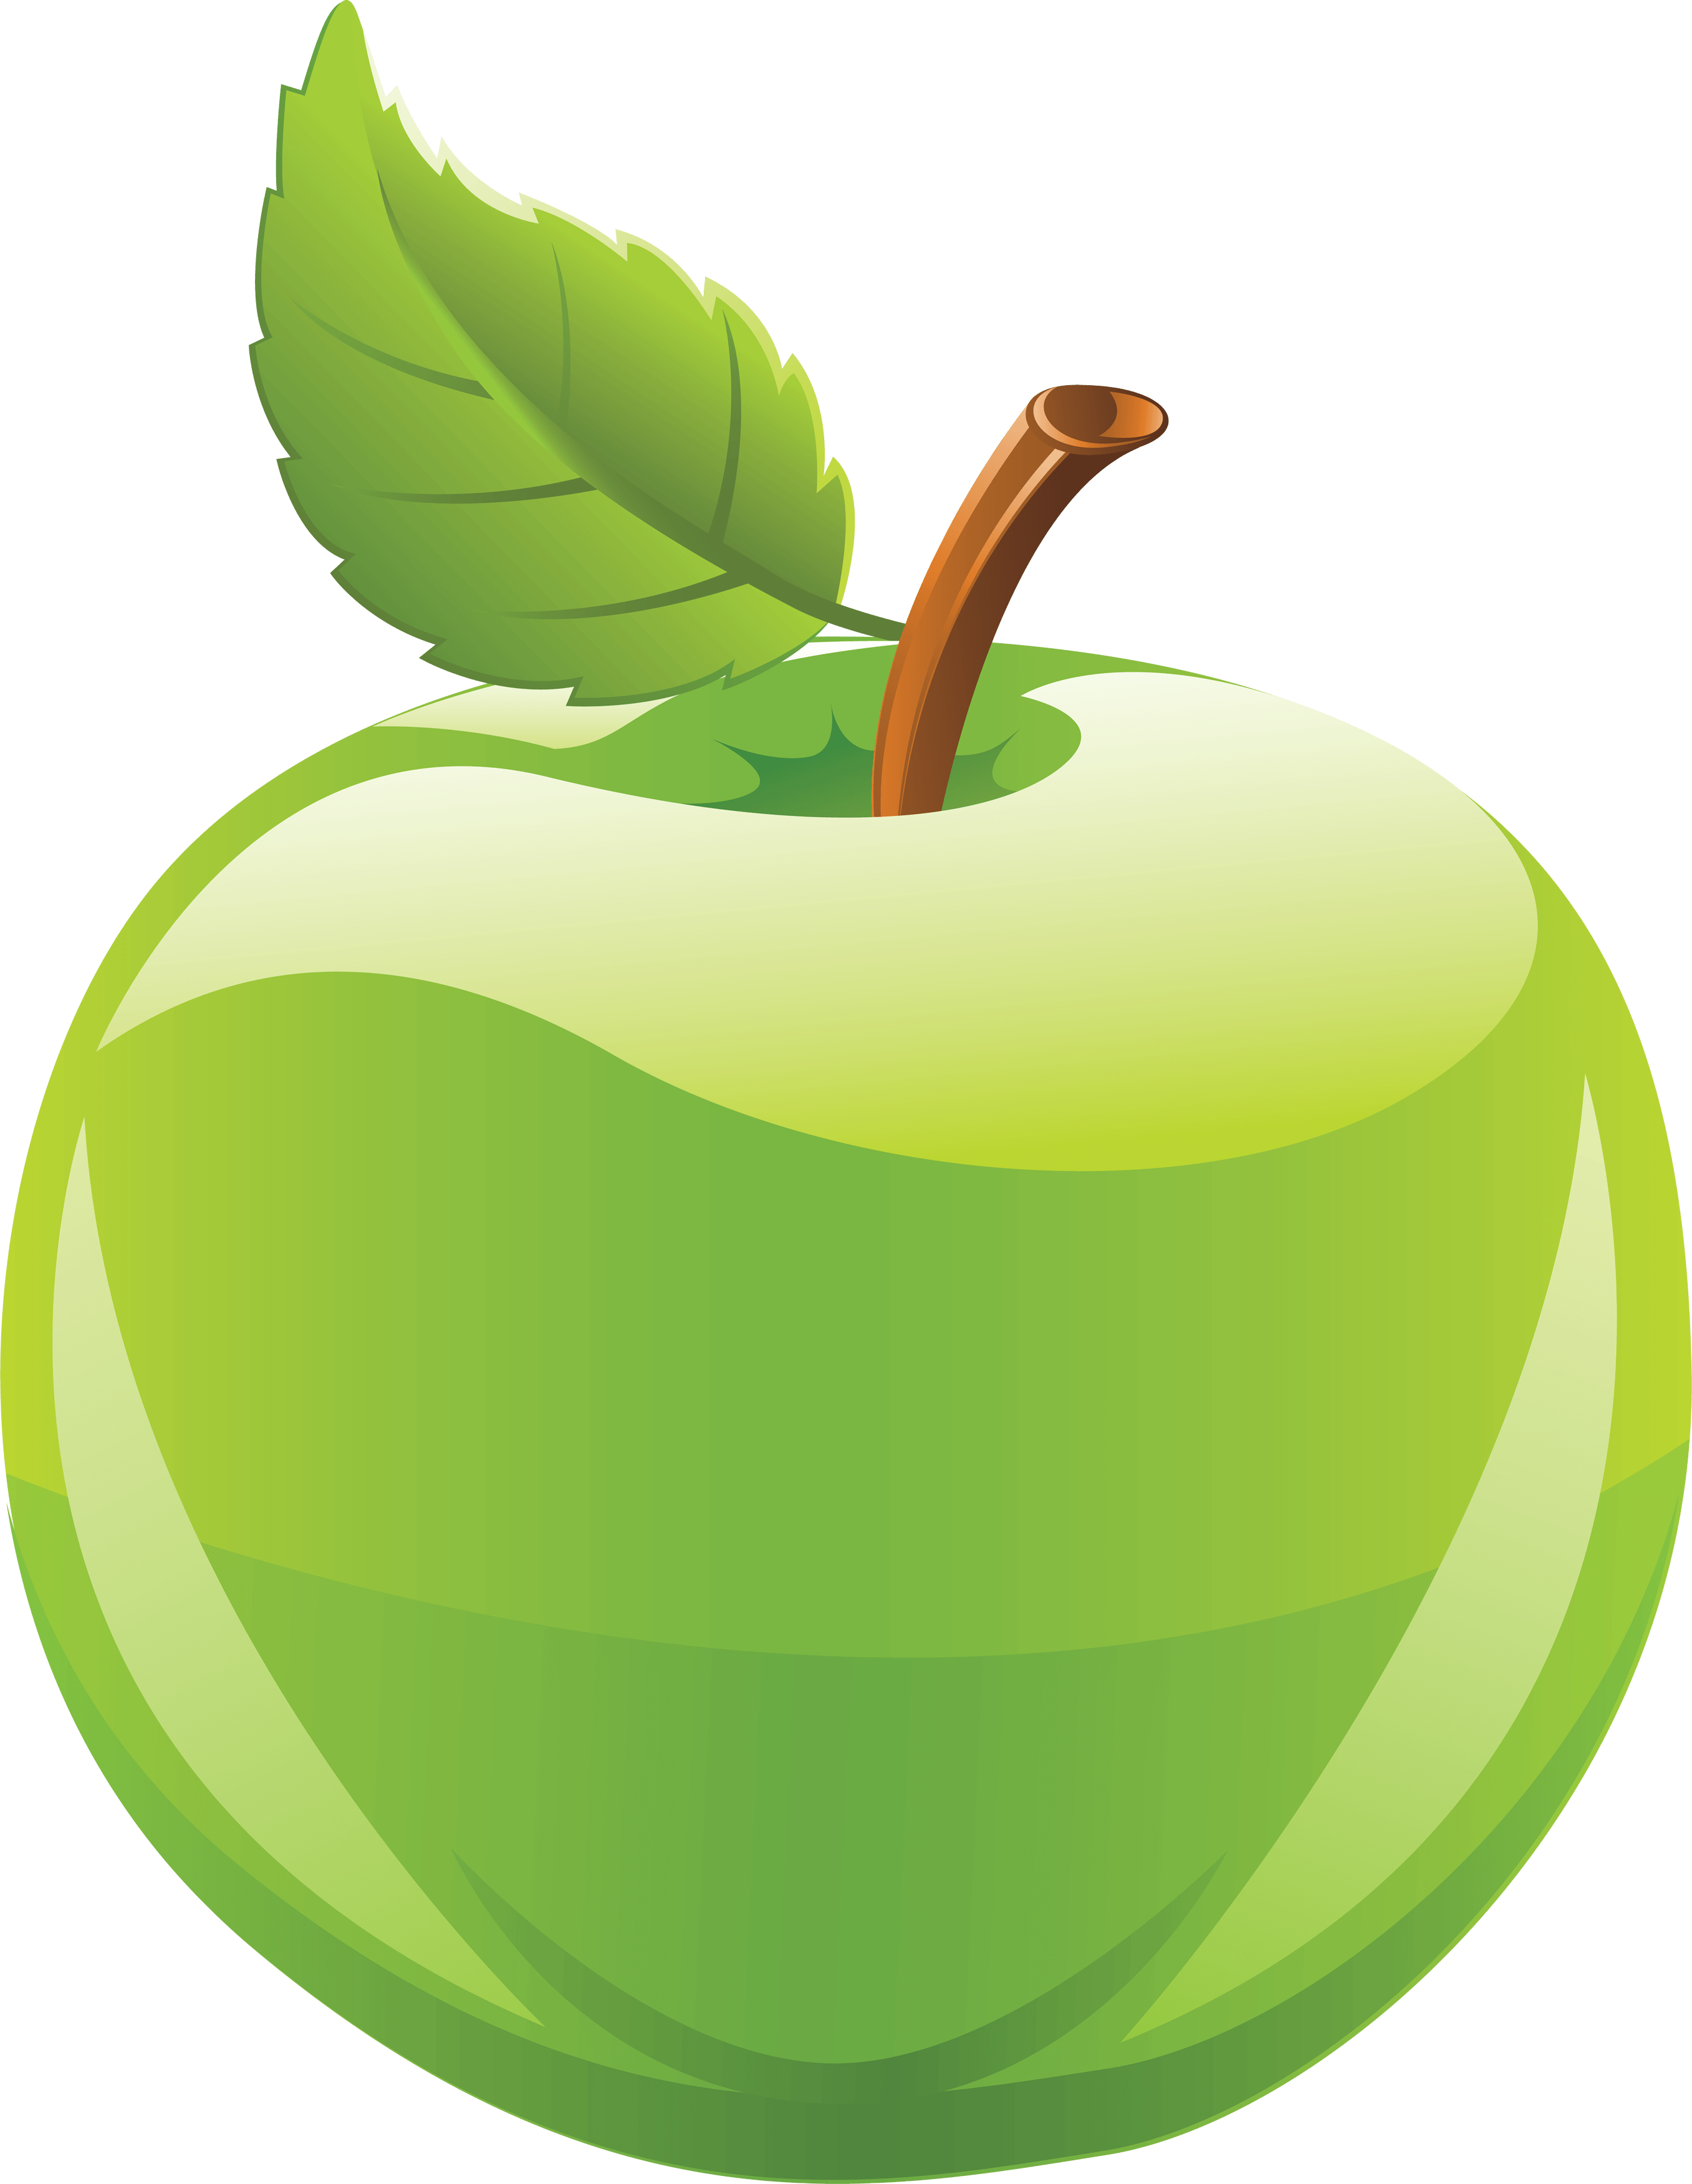 Apple png clipart. Green image